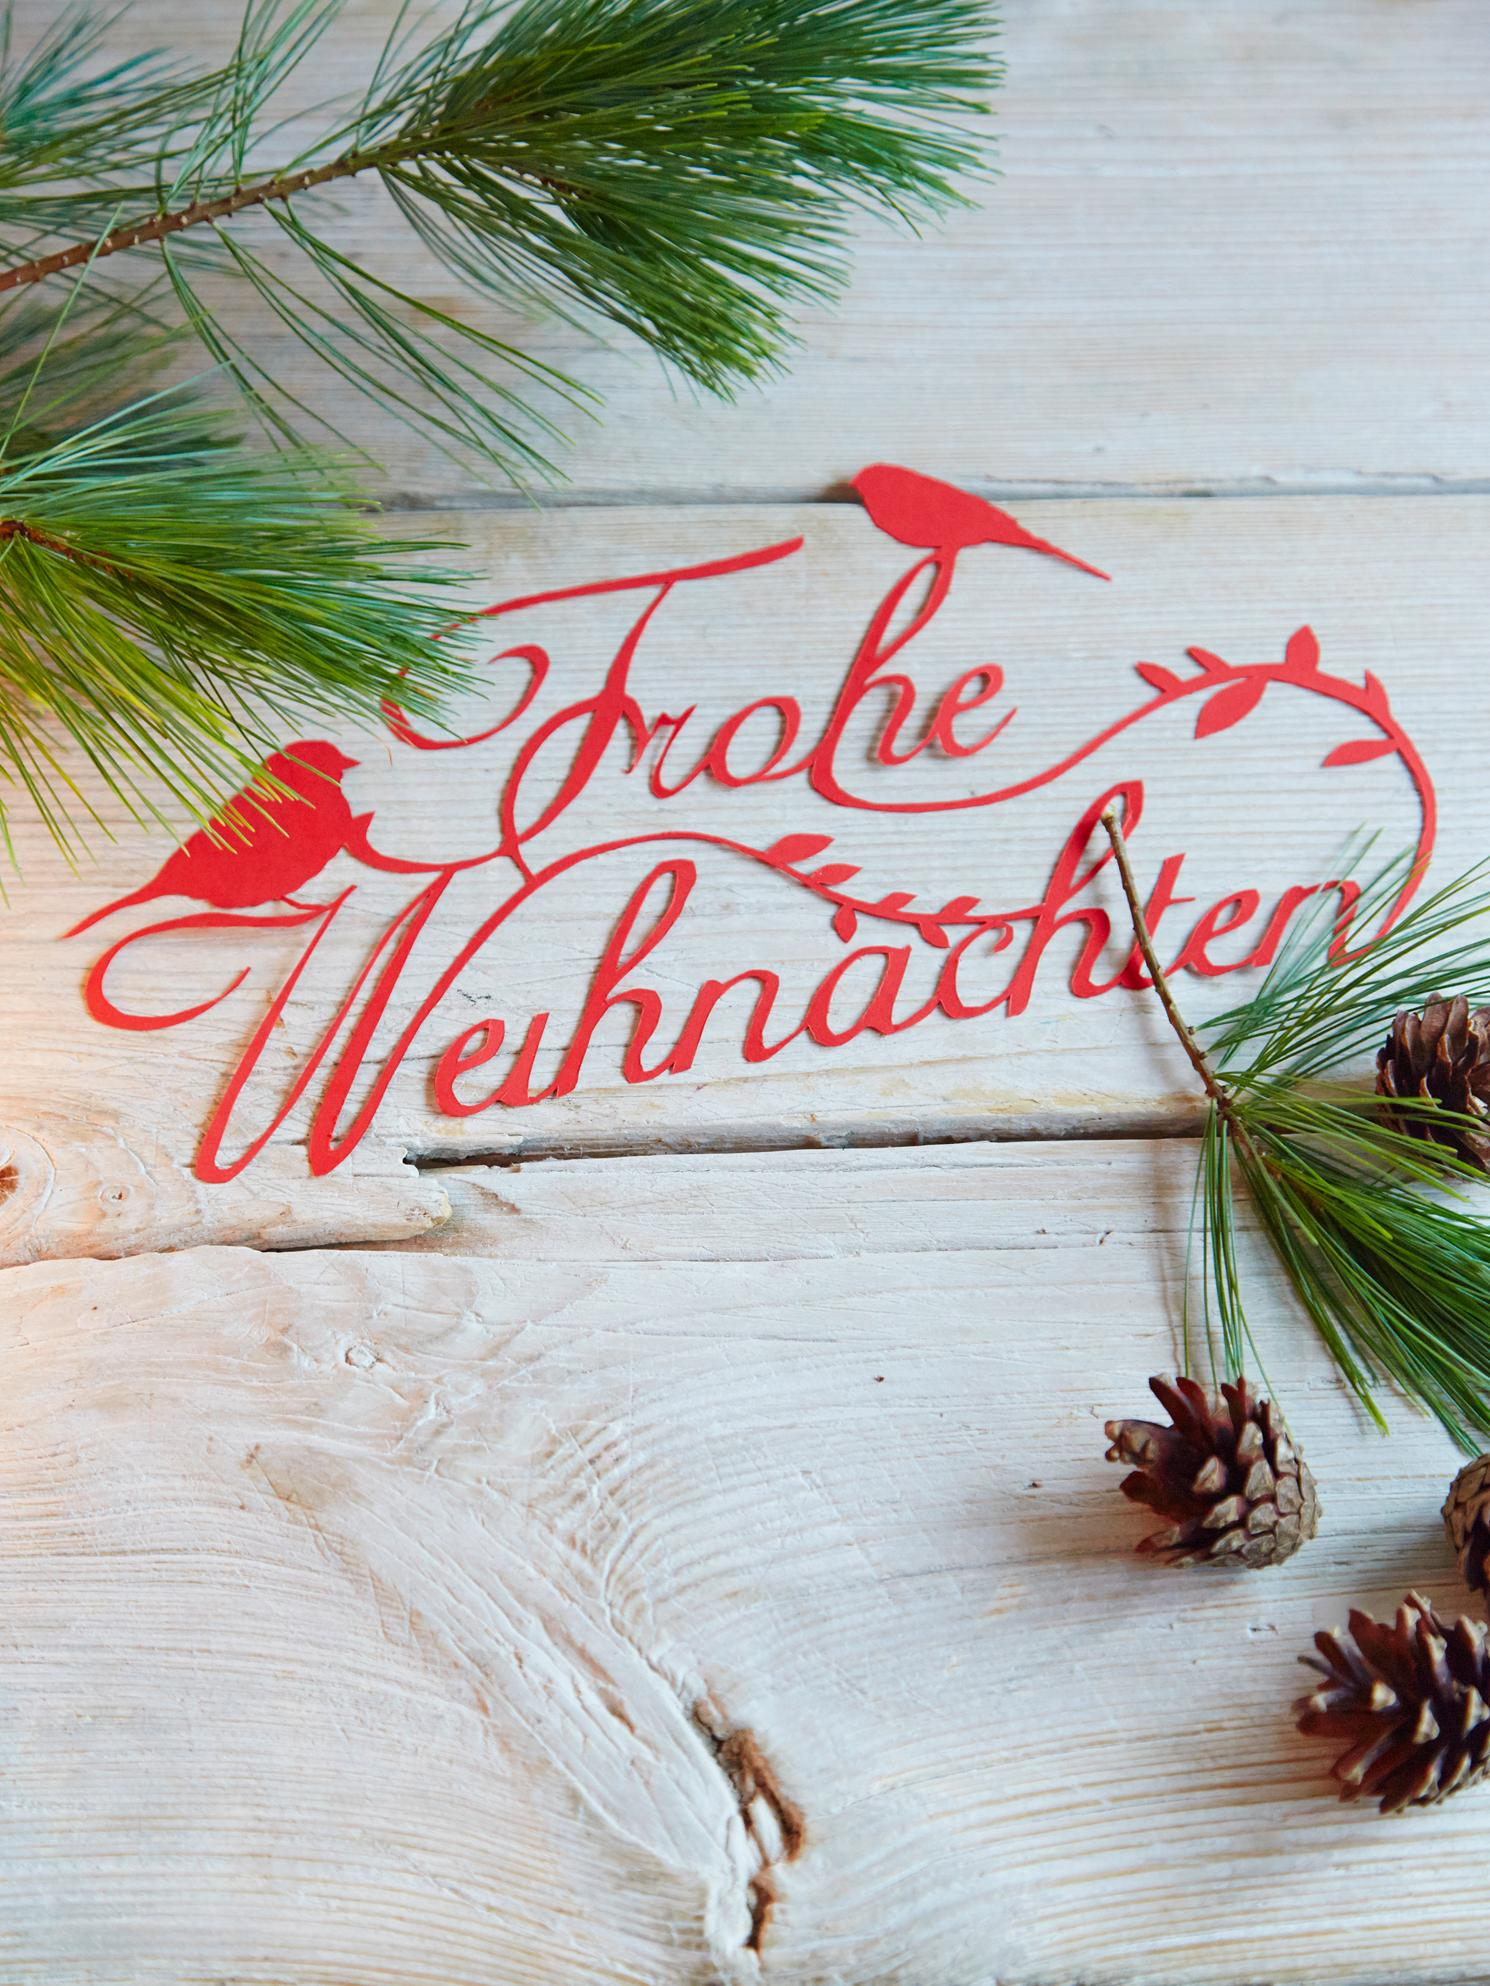 Wortkunst #weihnachtsdeko ©Living at Home